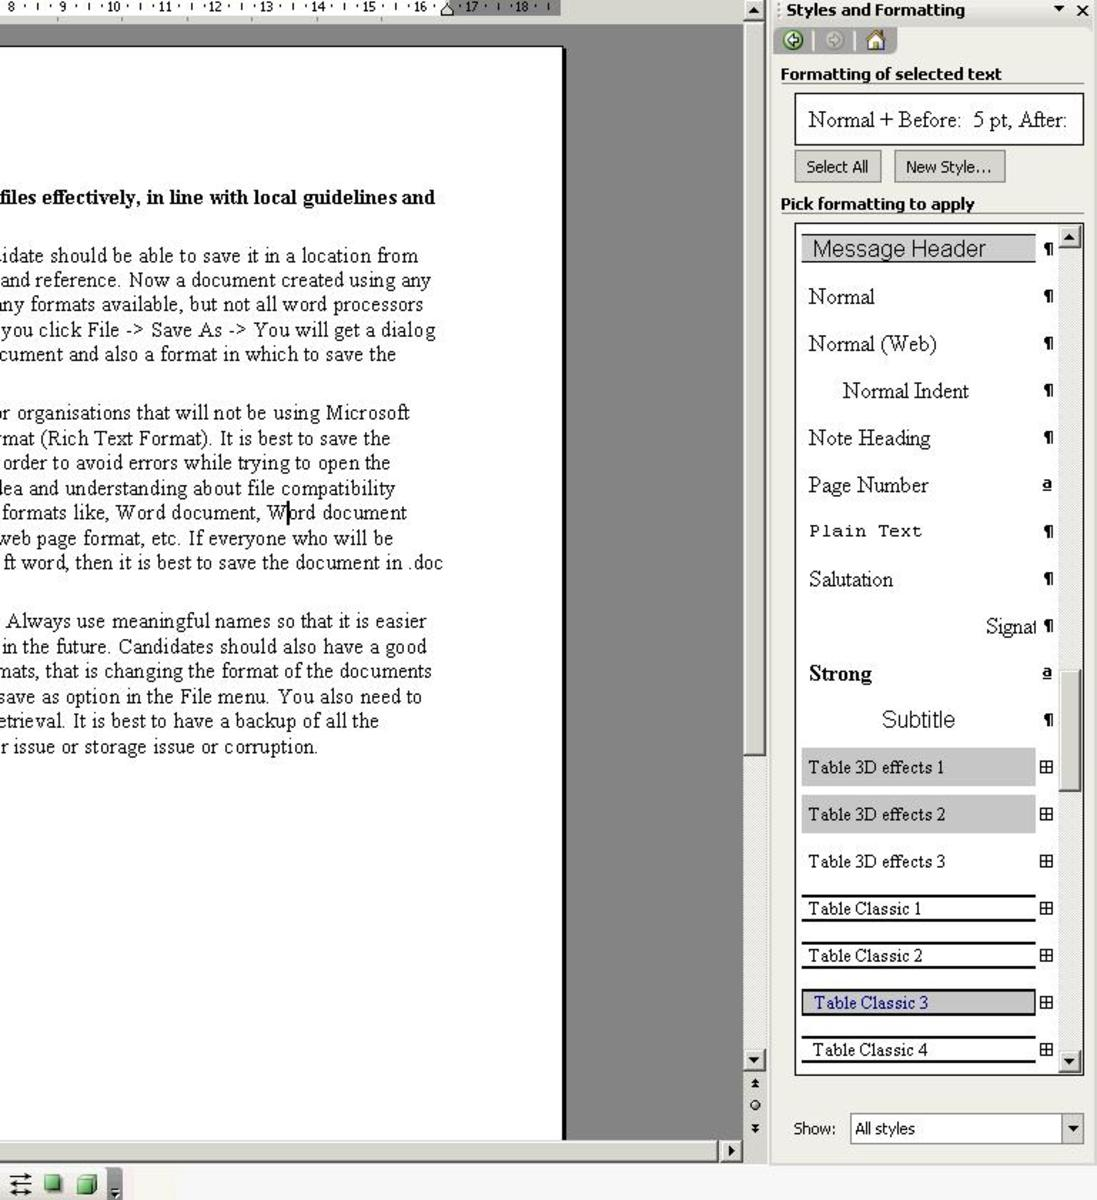 If you want to change the style for a paragraph, click anywhere inside that paragraph, then click on the style that you wish to apply